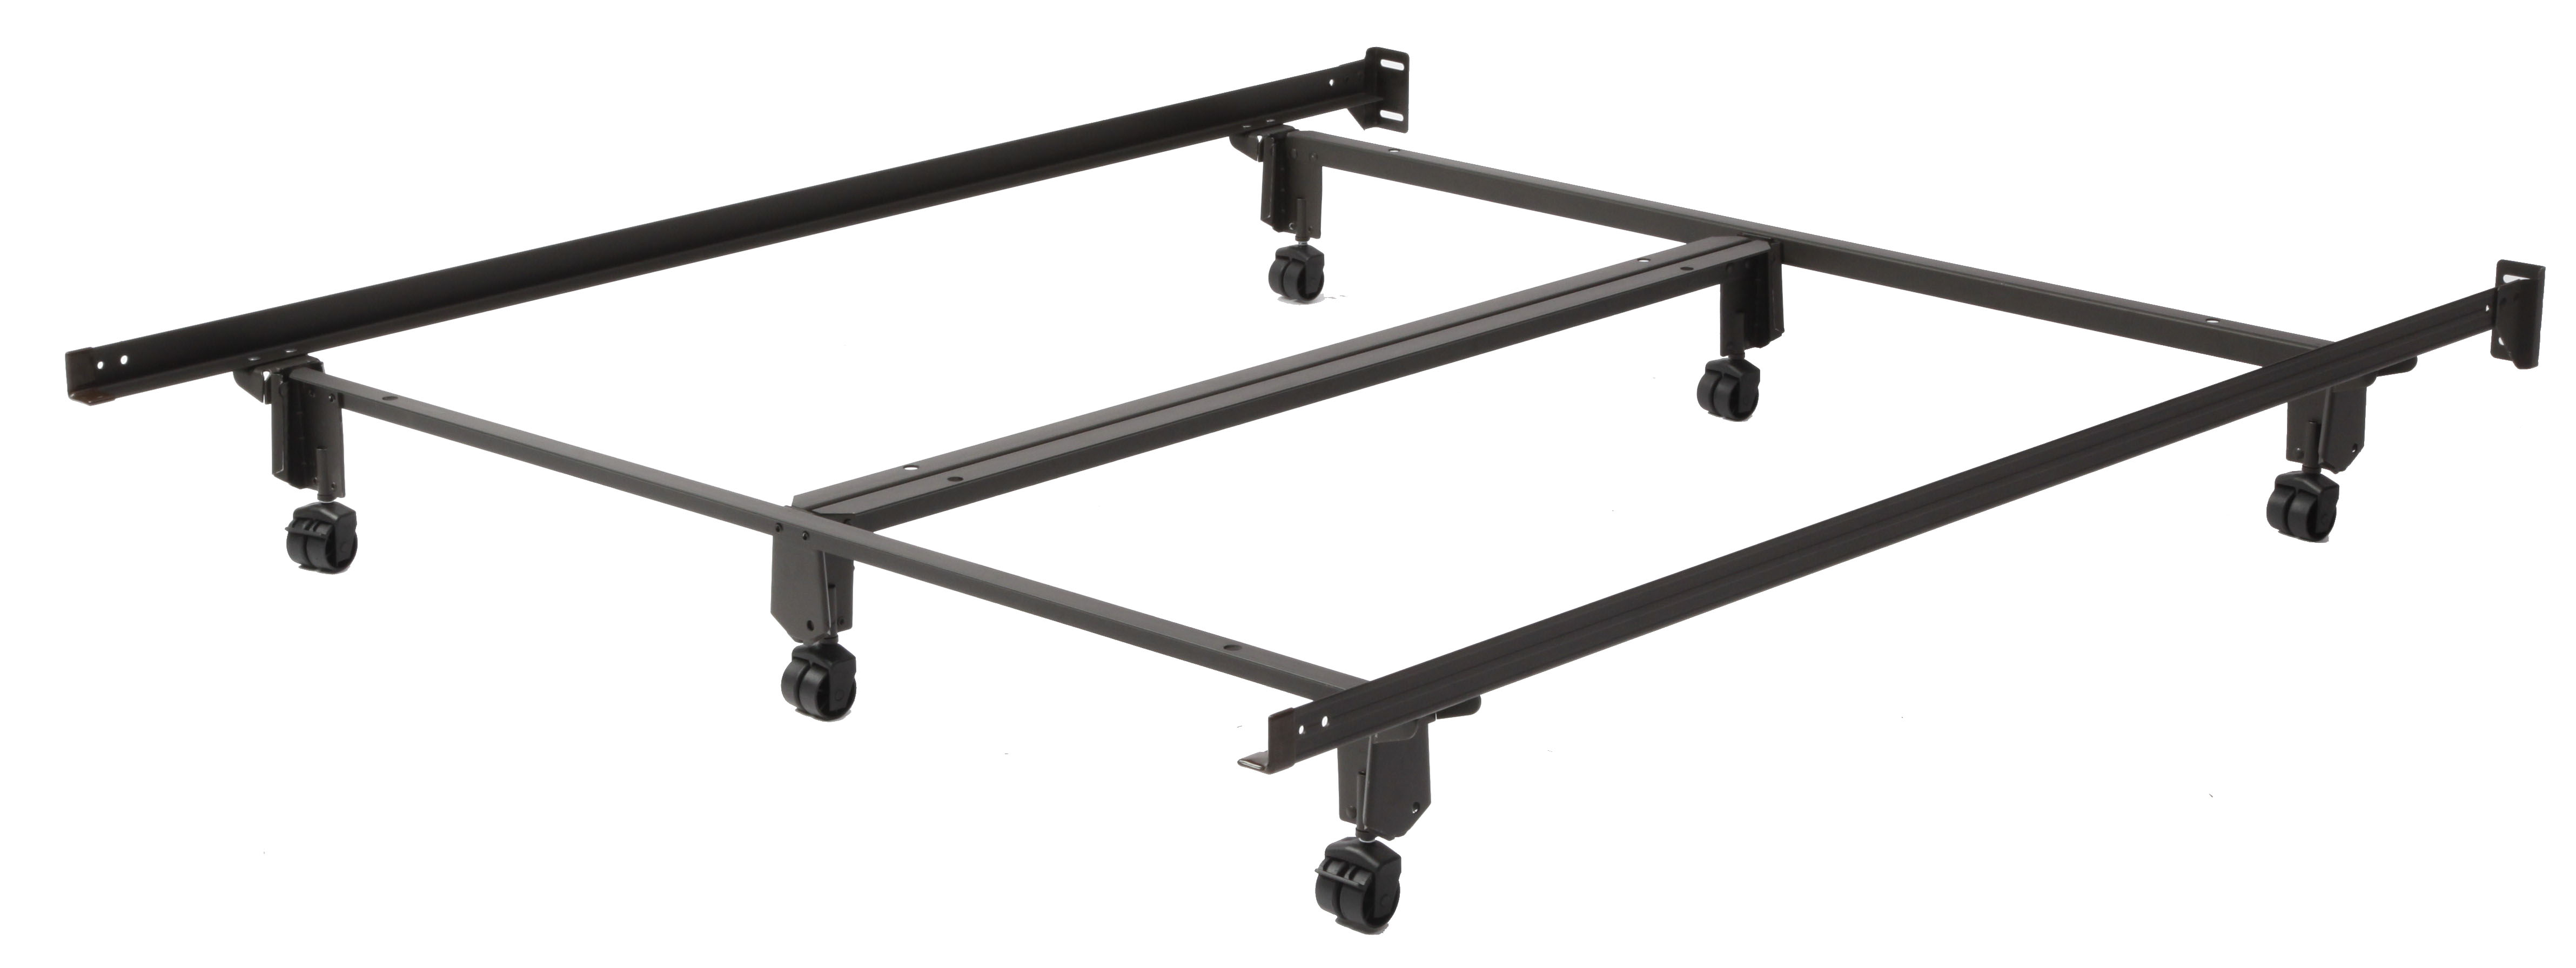 Mantua CraftLock 166R King Bed Frame with Rollers